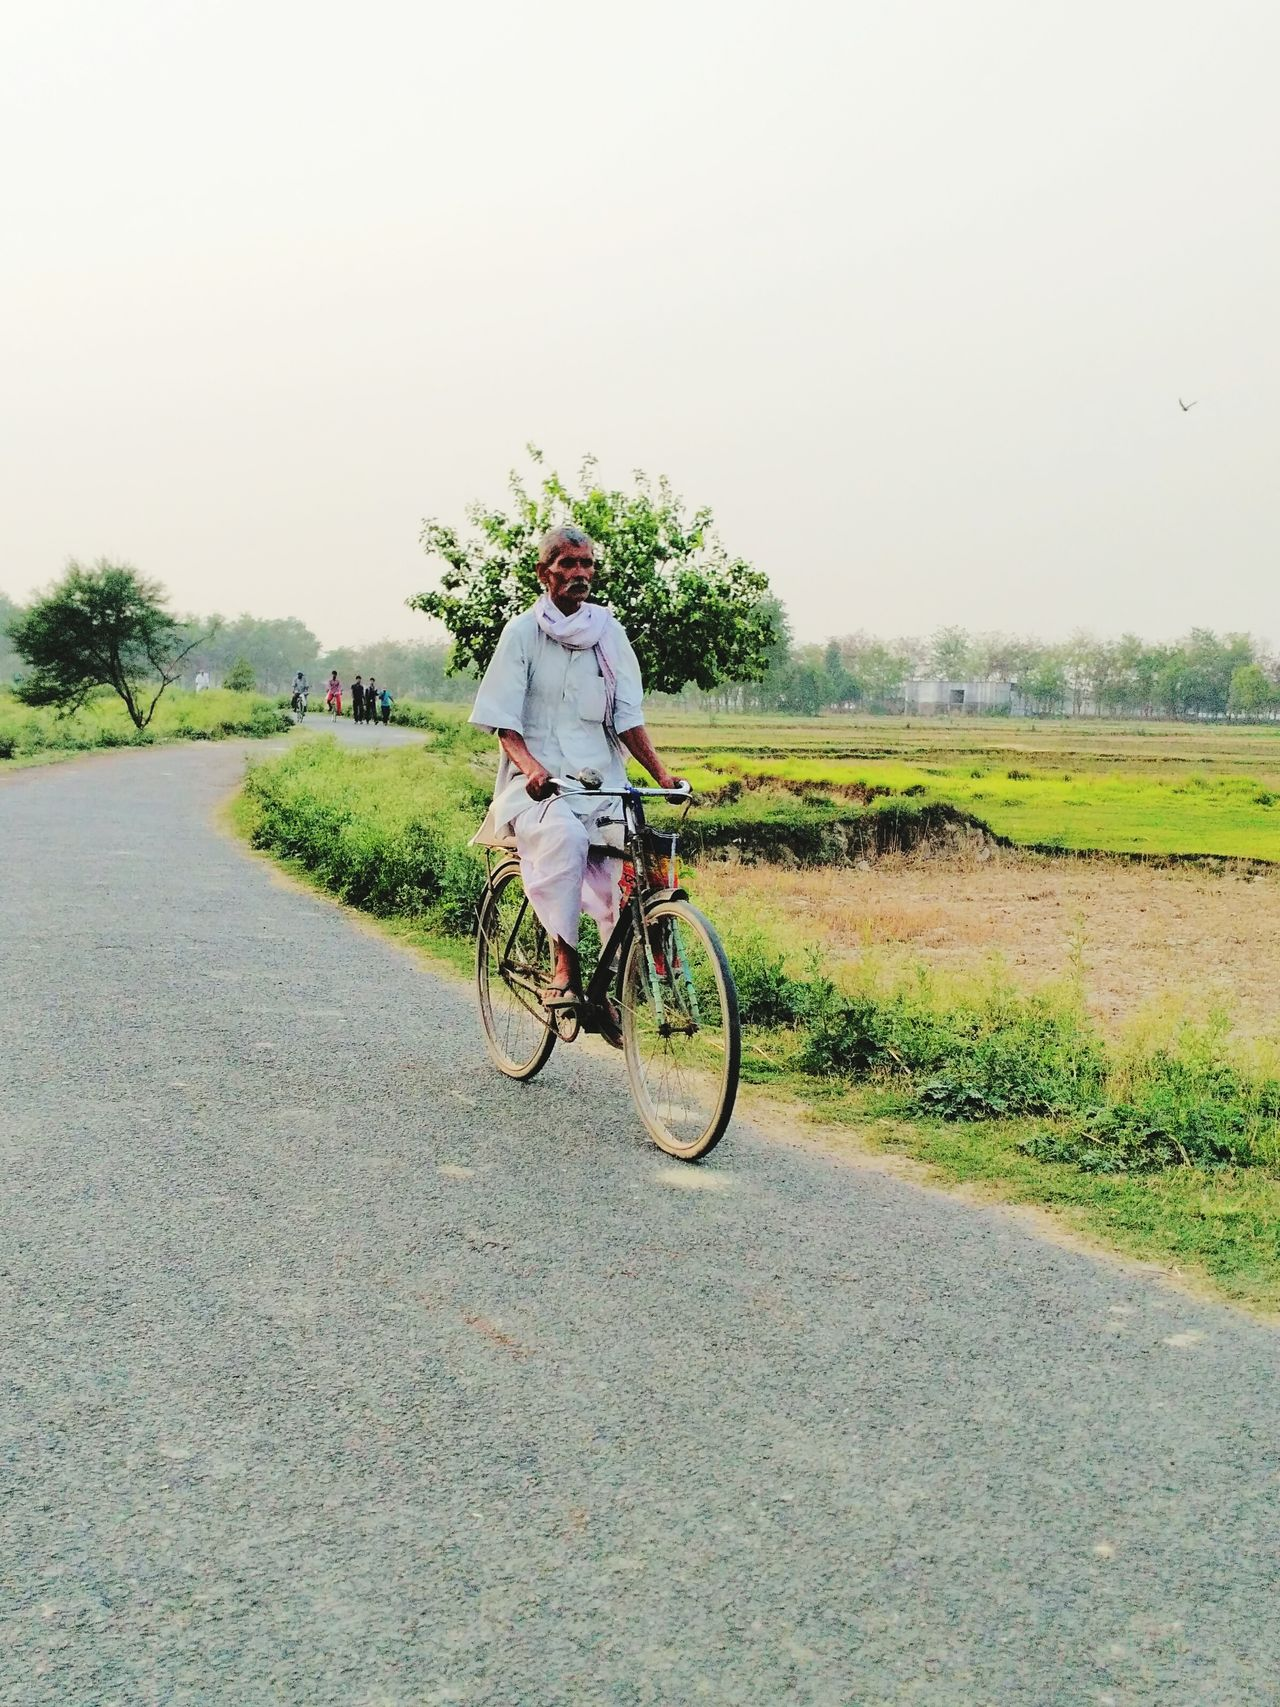 Bicycle Rural Scene Transportation Outdoors One Person The Way Forward